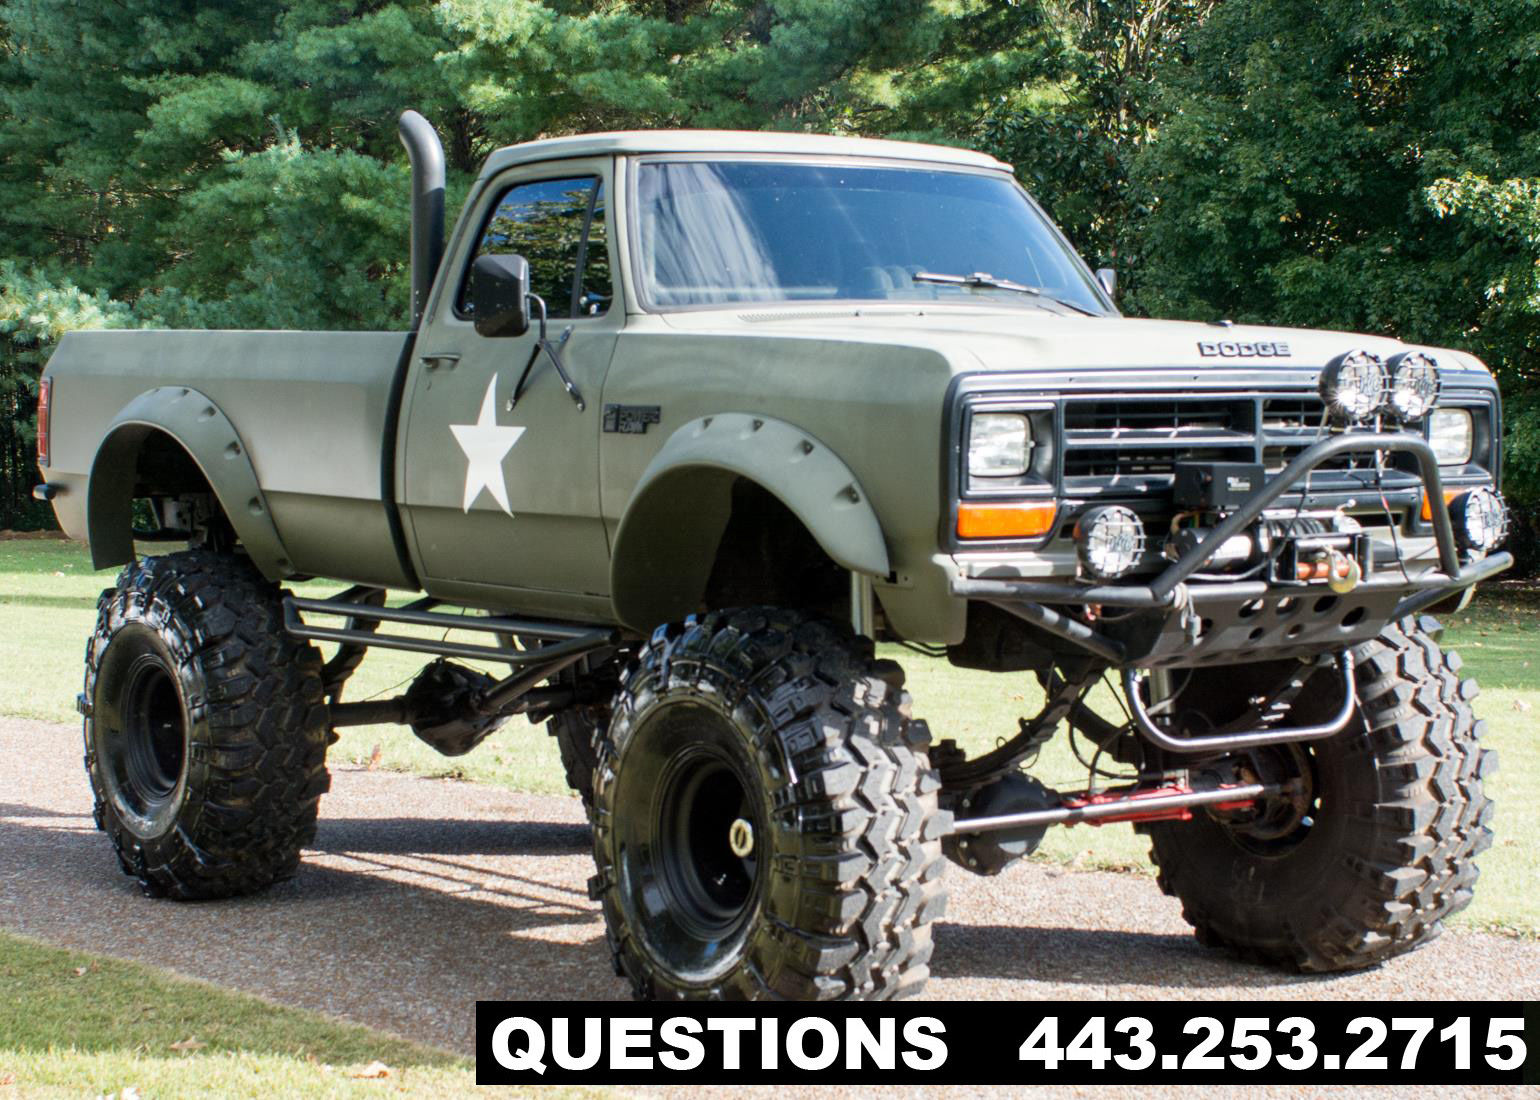 1989 dodge ram 2500 mud truck monster truck for sale. Black Bedroom Furniture Sets. Home Design Ideas